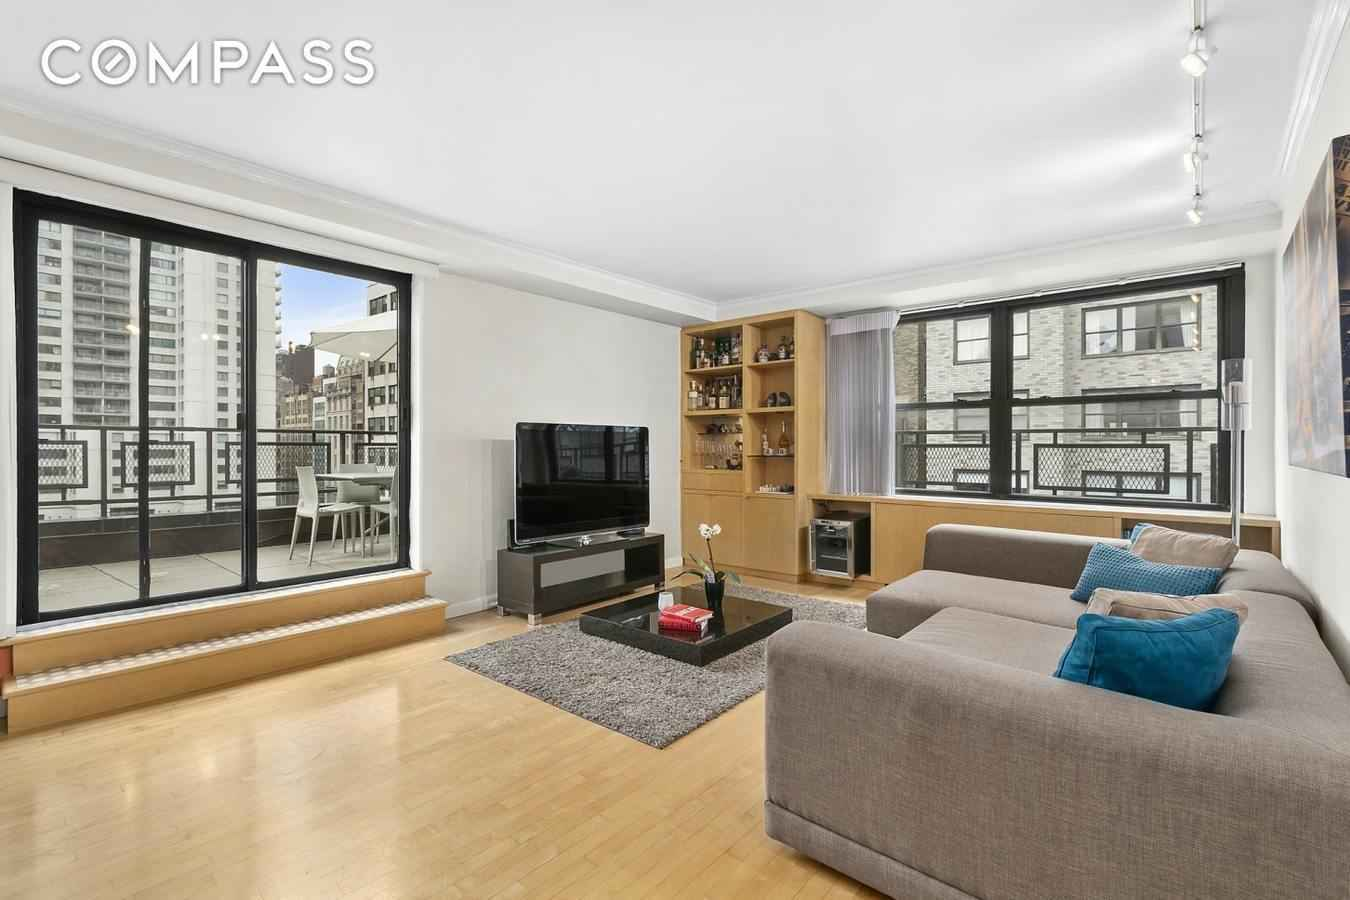 Apartment for sale at 225 East 57th Street, Apt 11-M